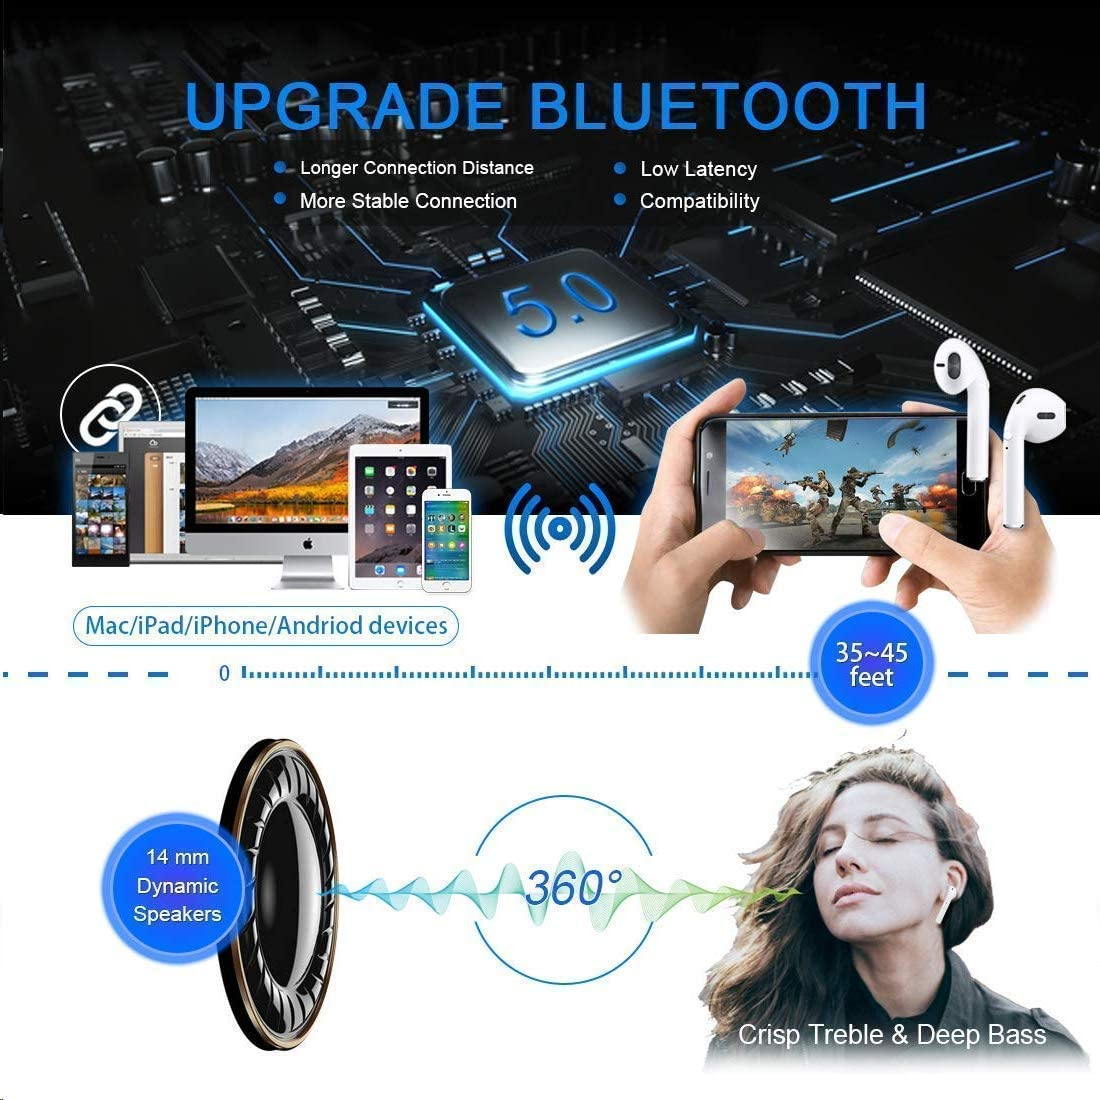 Bluetooth 5.0 Wireless Earbuds white Pop-ups Auto Pairingwith Portable Charging Case Noise Canceling IPX5 Waterproof Sports Headset Rabiry Bluetooth Headphones